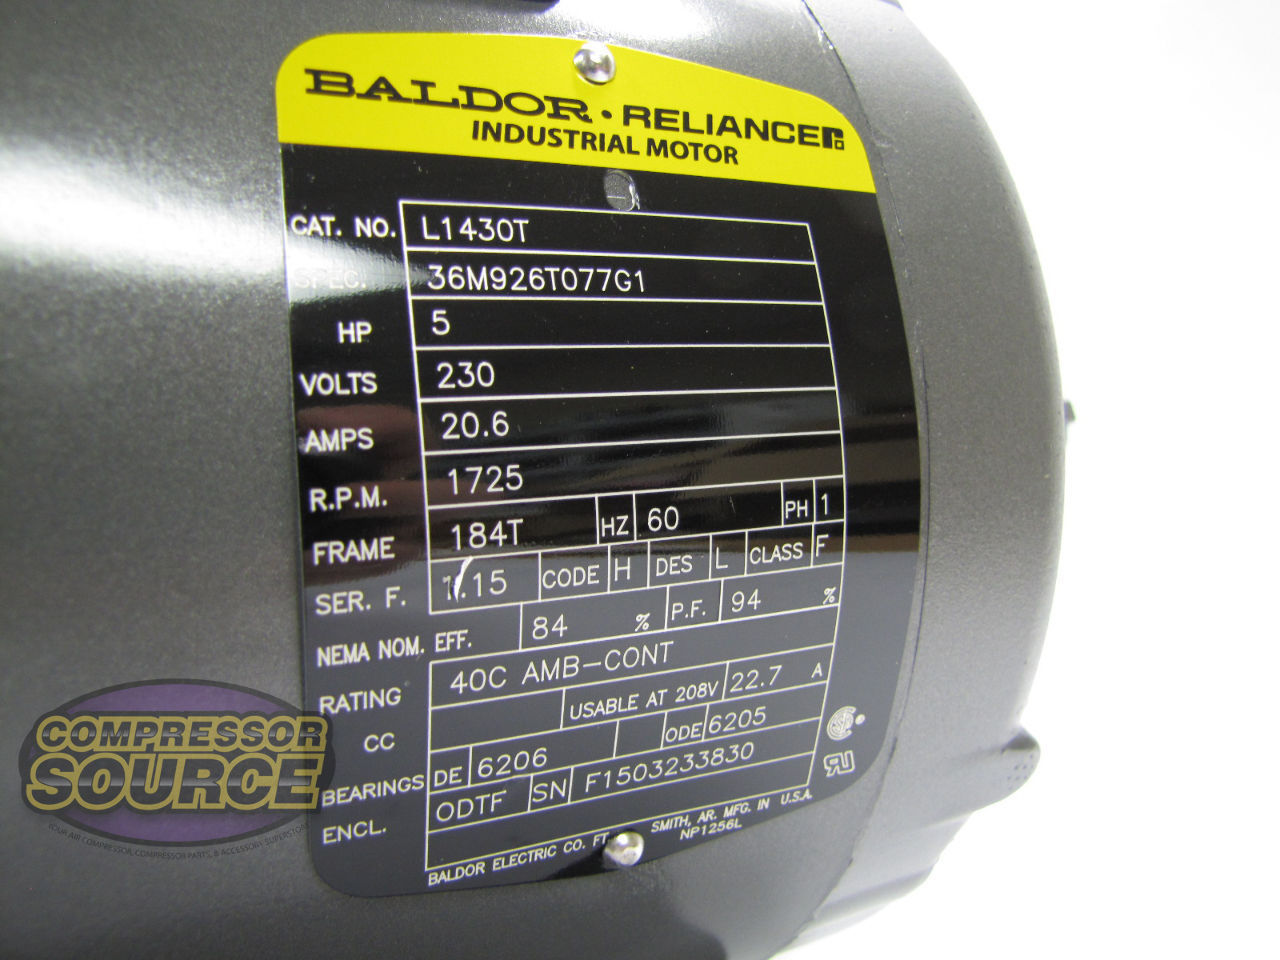 l1430t_594__3 5 hp single phase baldor electric compressor motor 184t frame Baldor 3 Phase Wiring Diagram at mifinder.co